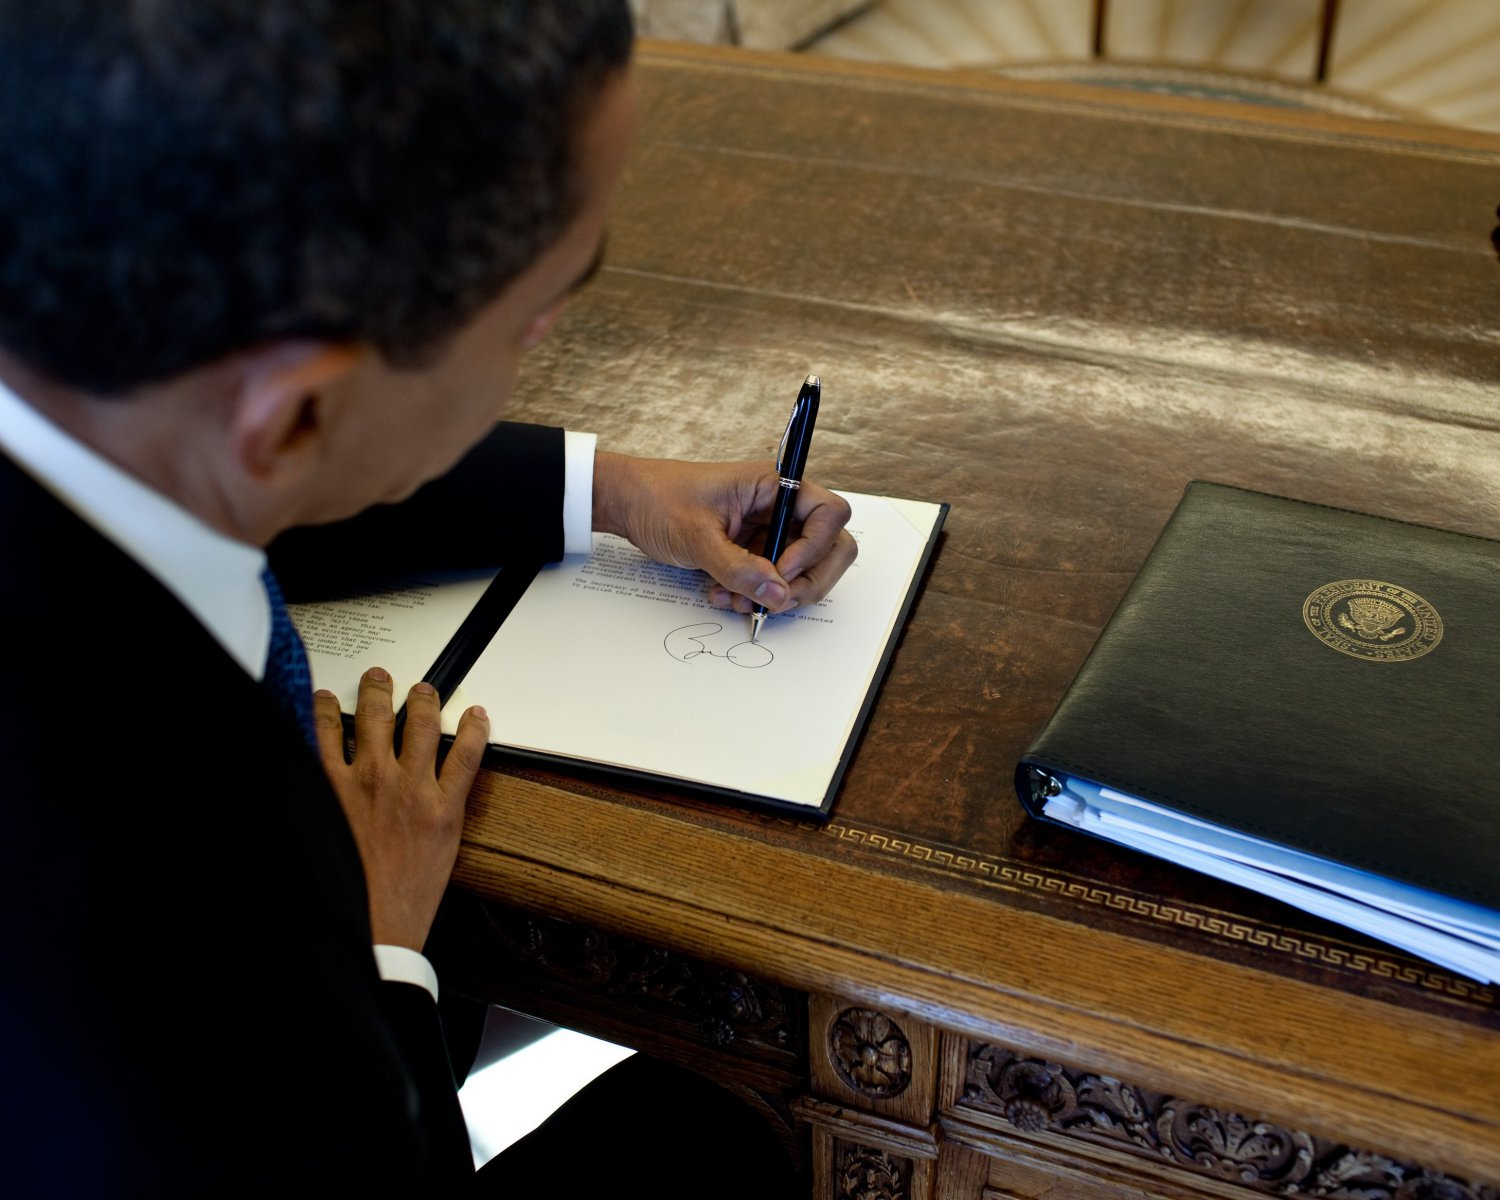 PRESIDENT BARACK OBAMA SIGNS AN EXECUTIVE ORDER IN 2009 - 8X10 PHOTO (ZY-396)